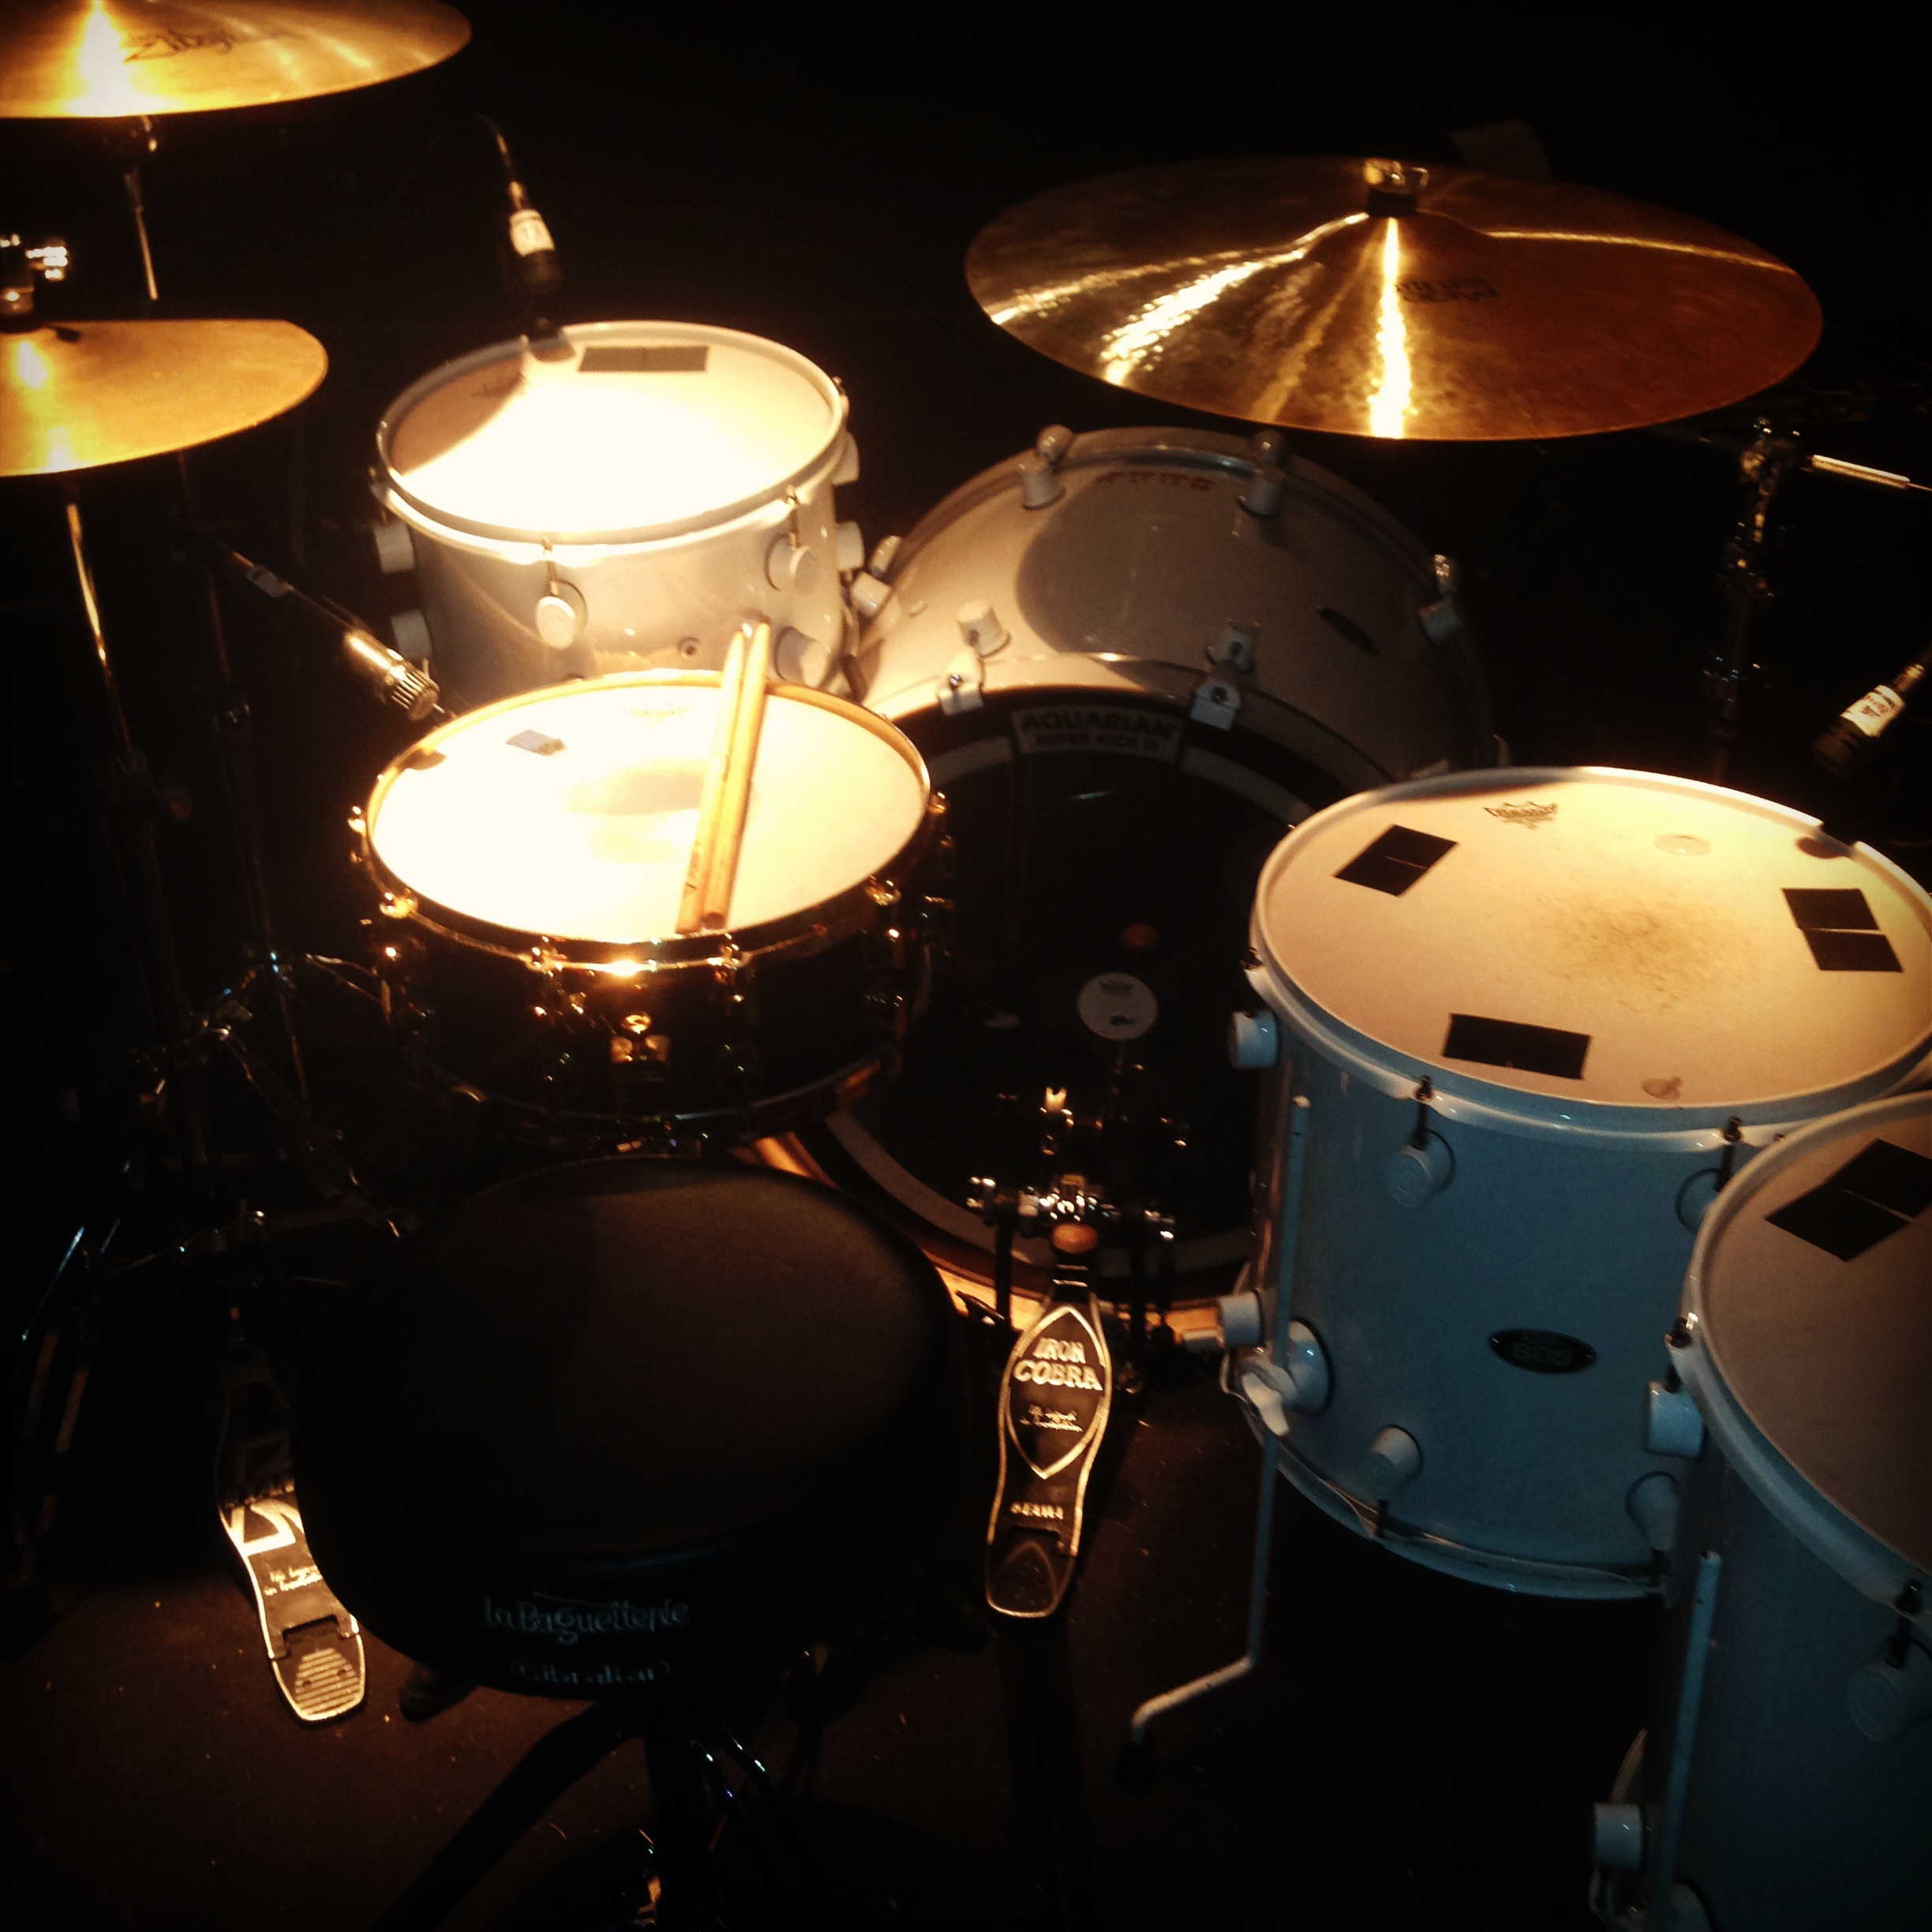 pdp pacific drums and percussion pdp805 image 1095509 audiofanzine. Black Bedroom Furniture Sets. Home Design Ideas